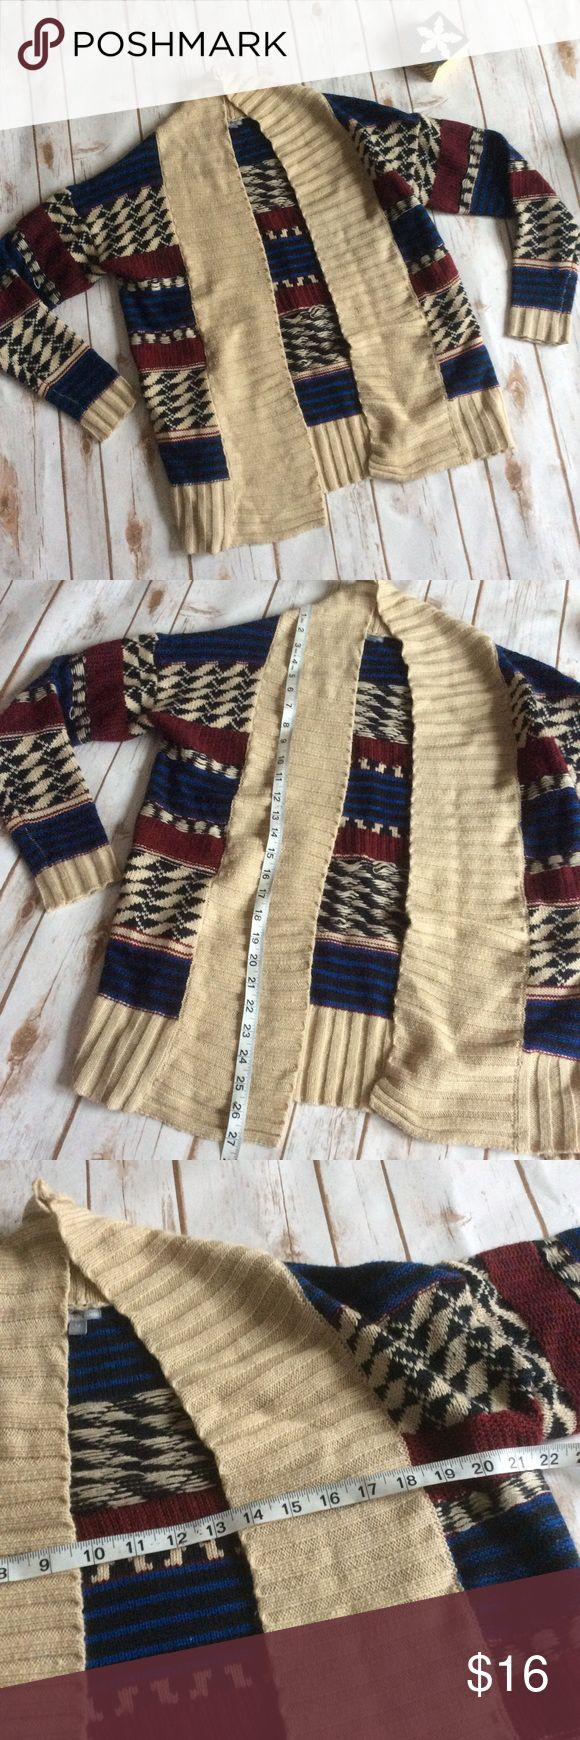 Charlotte Russe Aztec Print Cardigan size Medium Like new cream with Aztec print open cardigan, cute for pairing with any top and skinny jeans or leggings! ❌no trades, holds, or lowball offers. ✅Clean and smoke free home, quick shipping, bundle discount, always! 🎁Free gift with $15+ bundle. Charlotte Russe Sweaters Cardigans